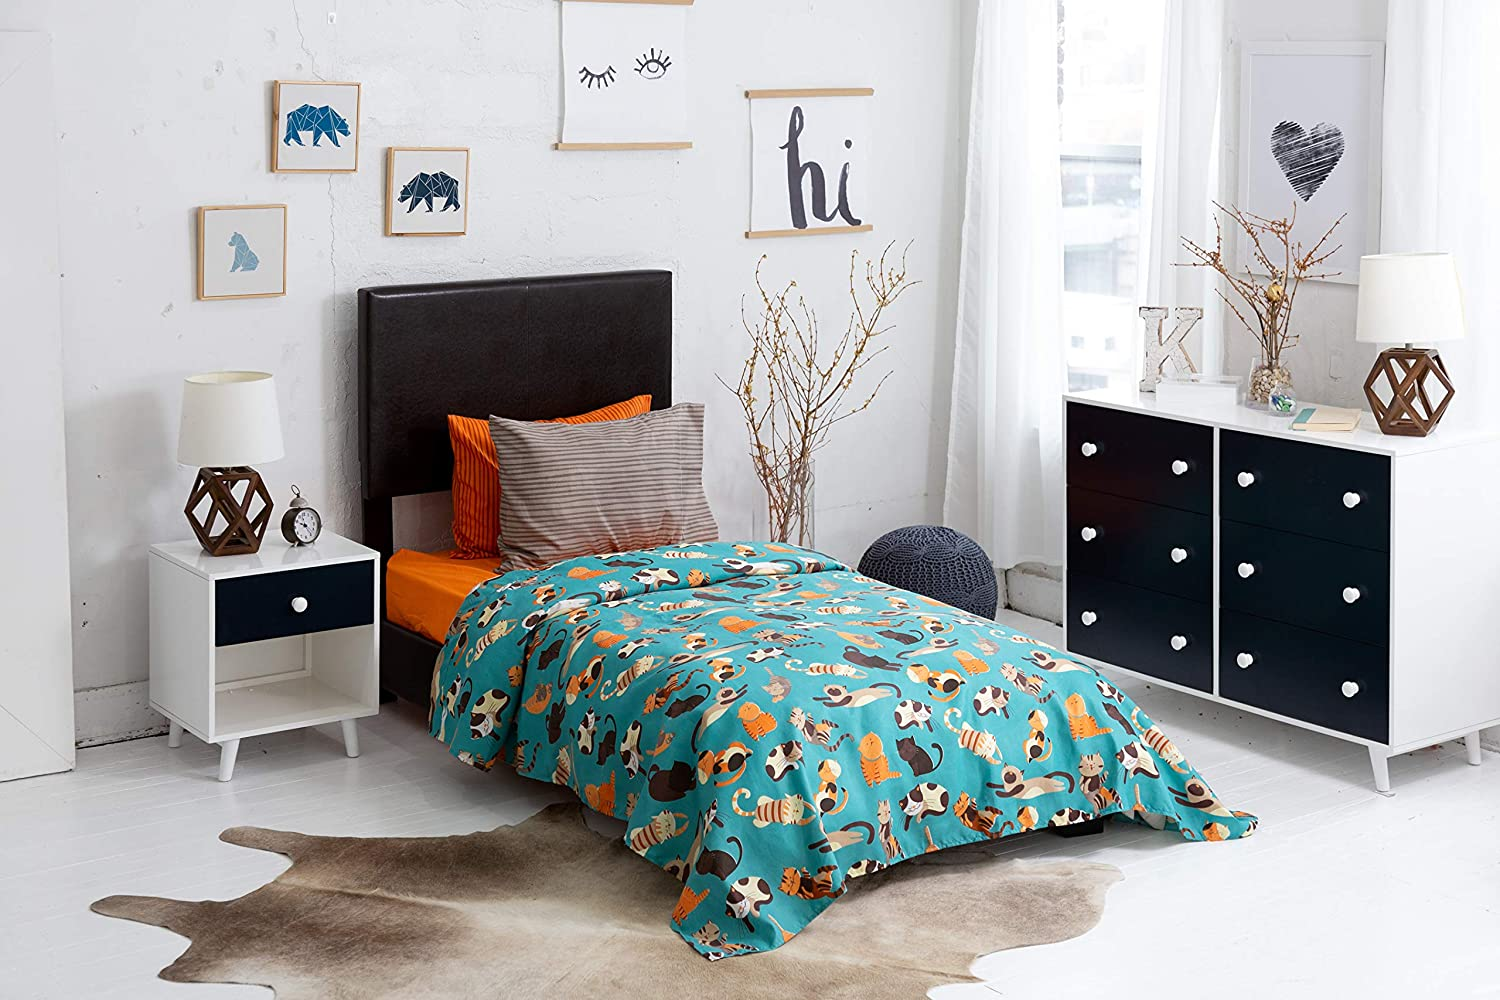 """Chital 4 Pc Twin Bed Sheets 1 Flat 15/"""" Deep Durable Super-Soft Double-Brushed Microfiber Pet Lovers Gift Idea 1 Fitted Sheet; 2 Pillow Cases Gender Neutral Cat Print Kids Bedding Set"""